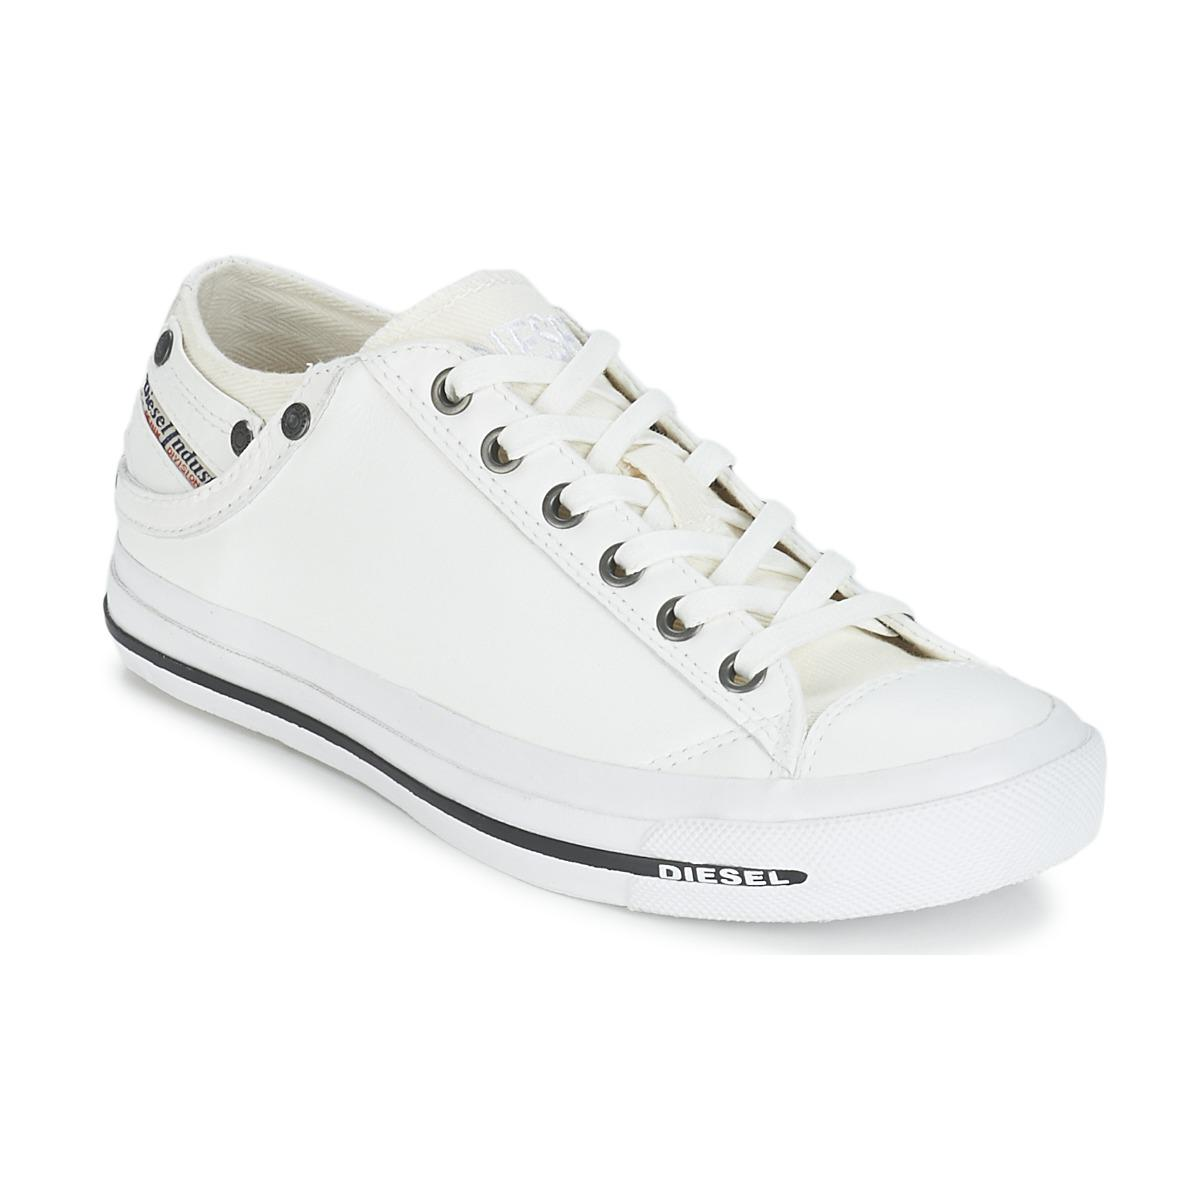 DIESEL - Exposure Iv Low Woman Women s Shoes (trainers) In White - Lyst.  View fullscreen 463c5e80080